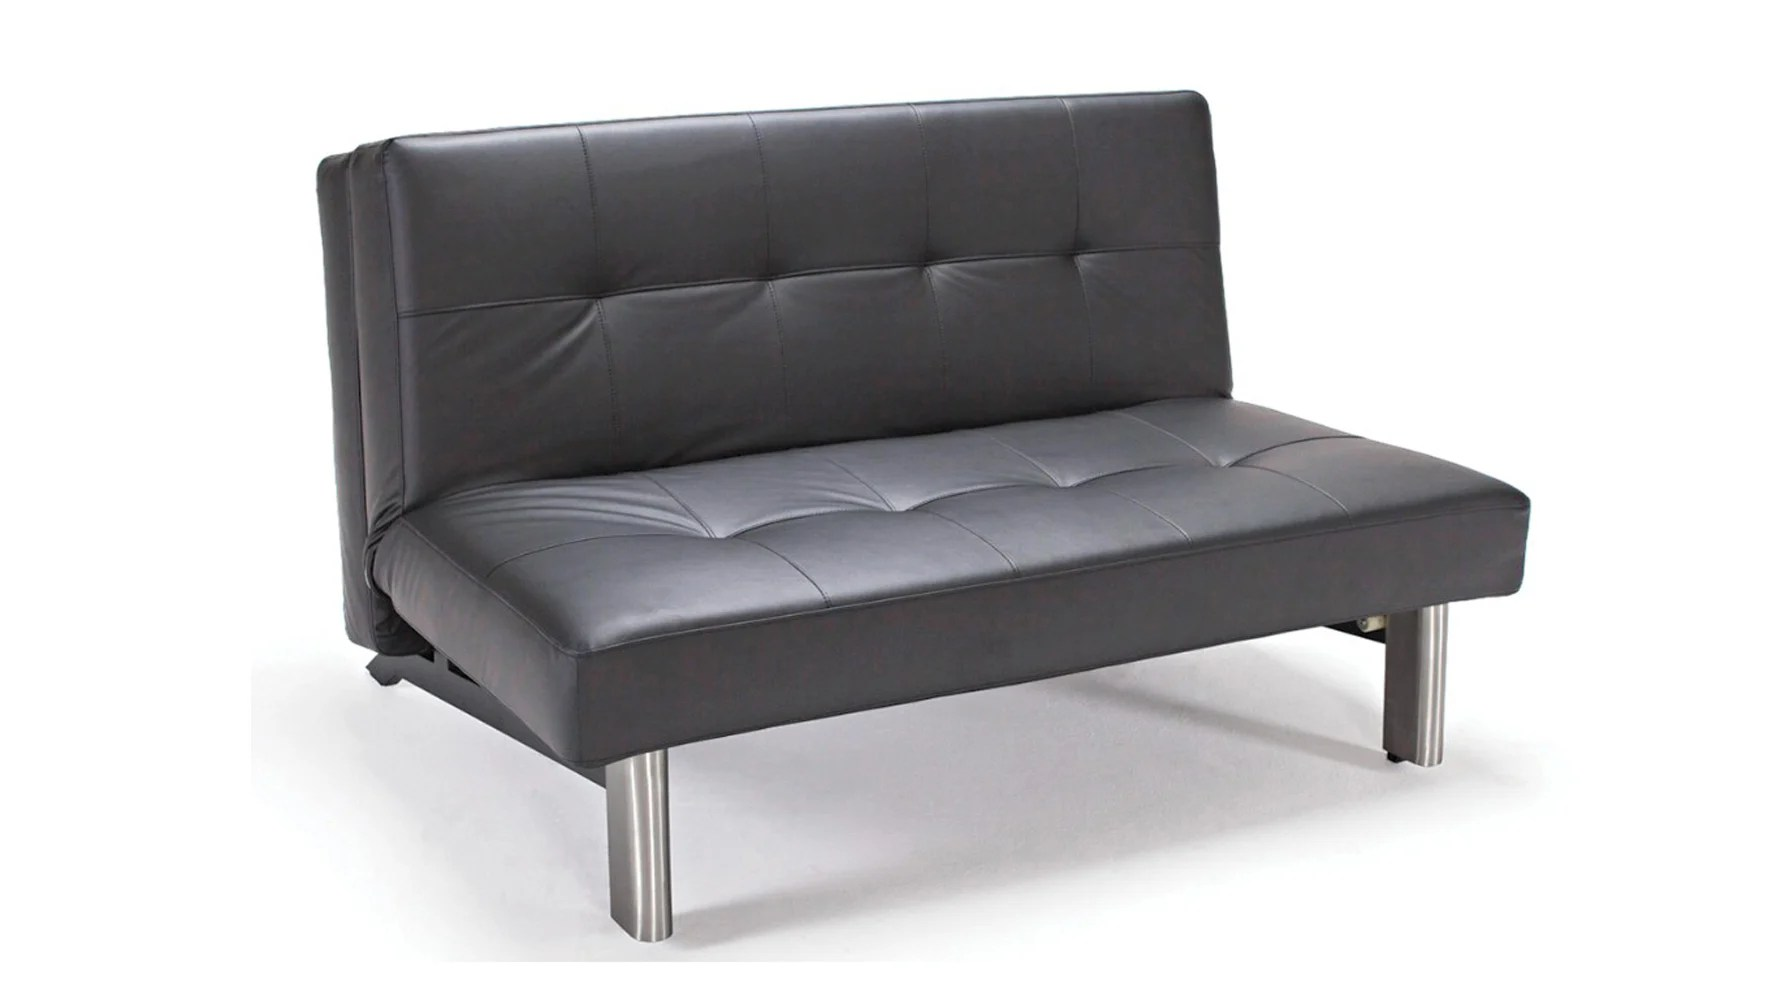 sofa steel beige leather recliner set stainless at rs 15000